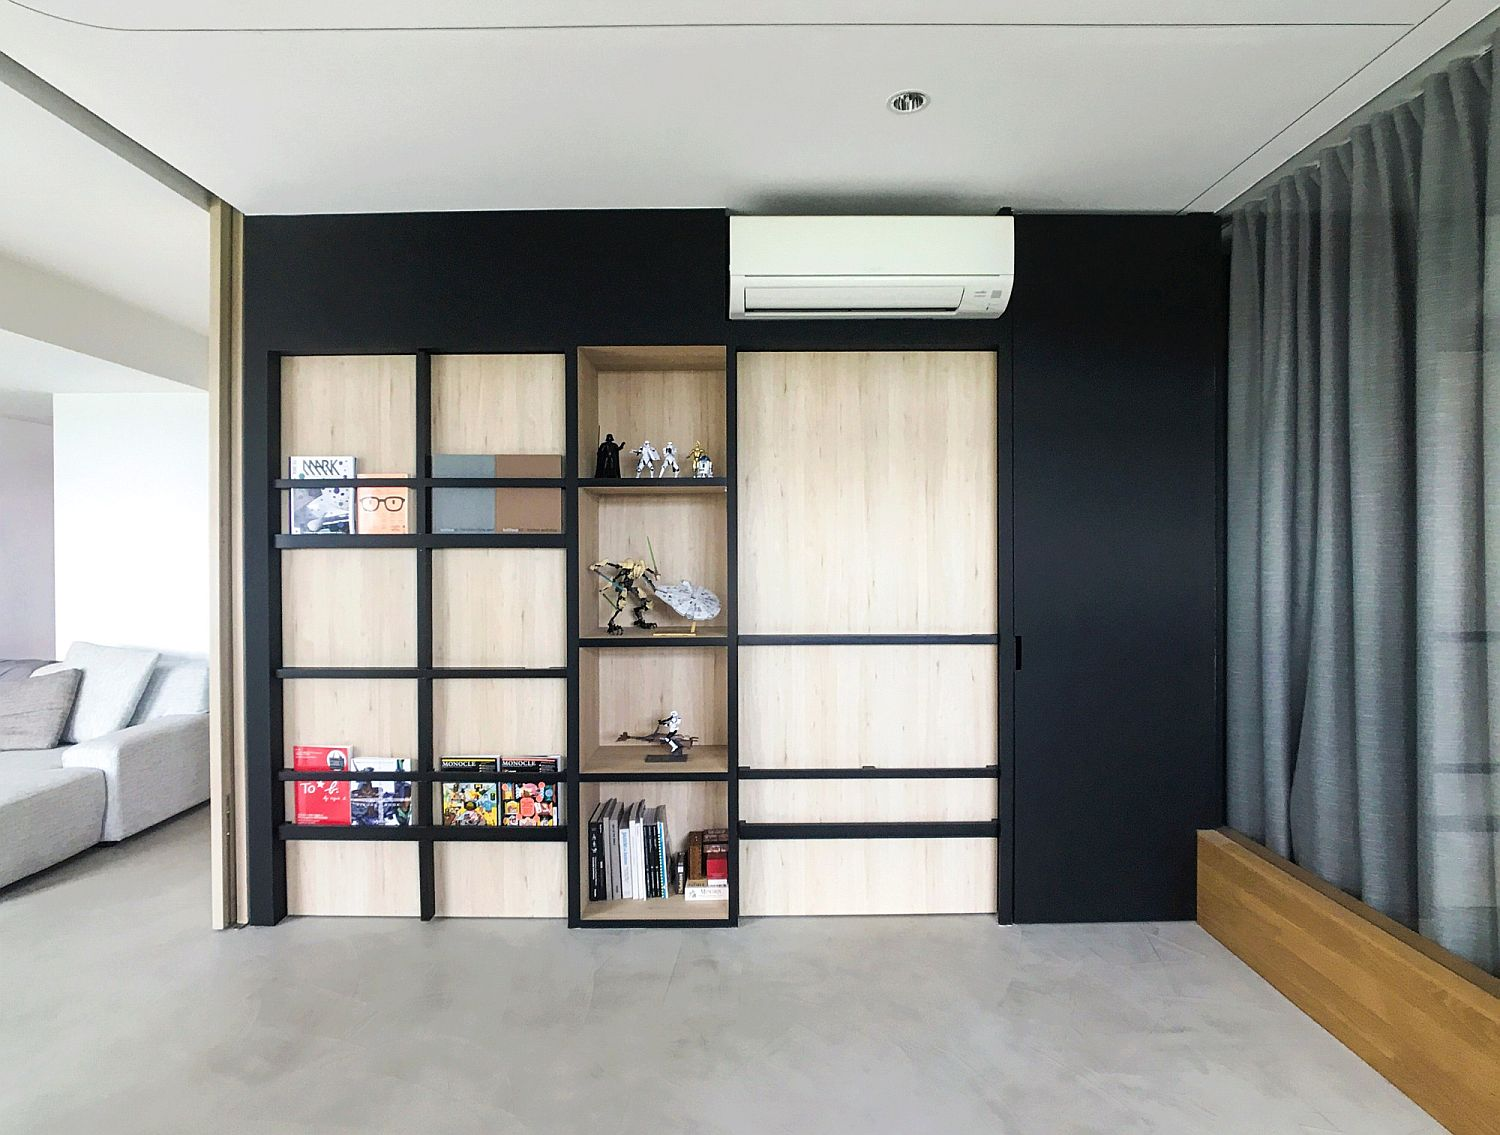 Innovative apartment turns even doors into shelving space!